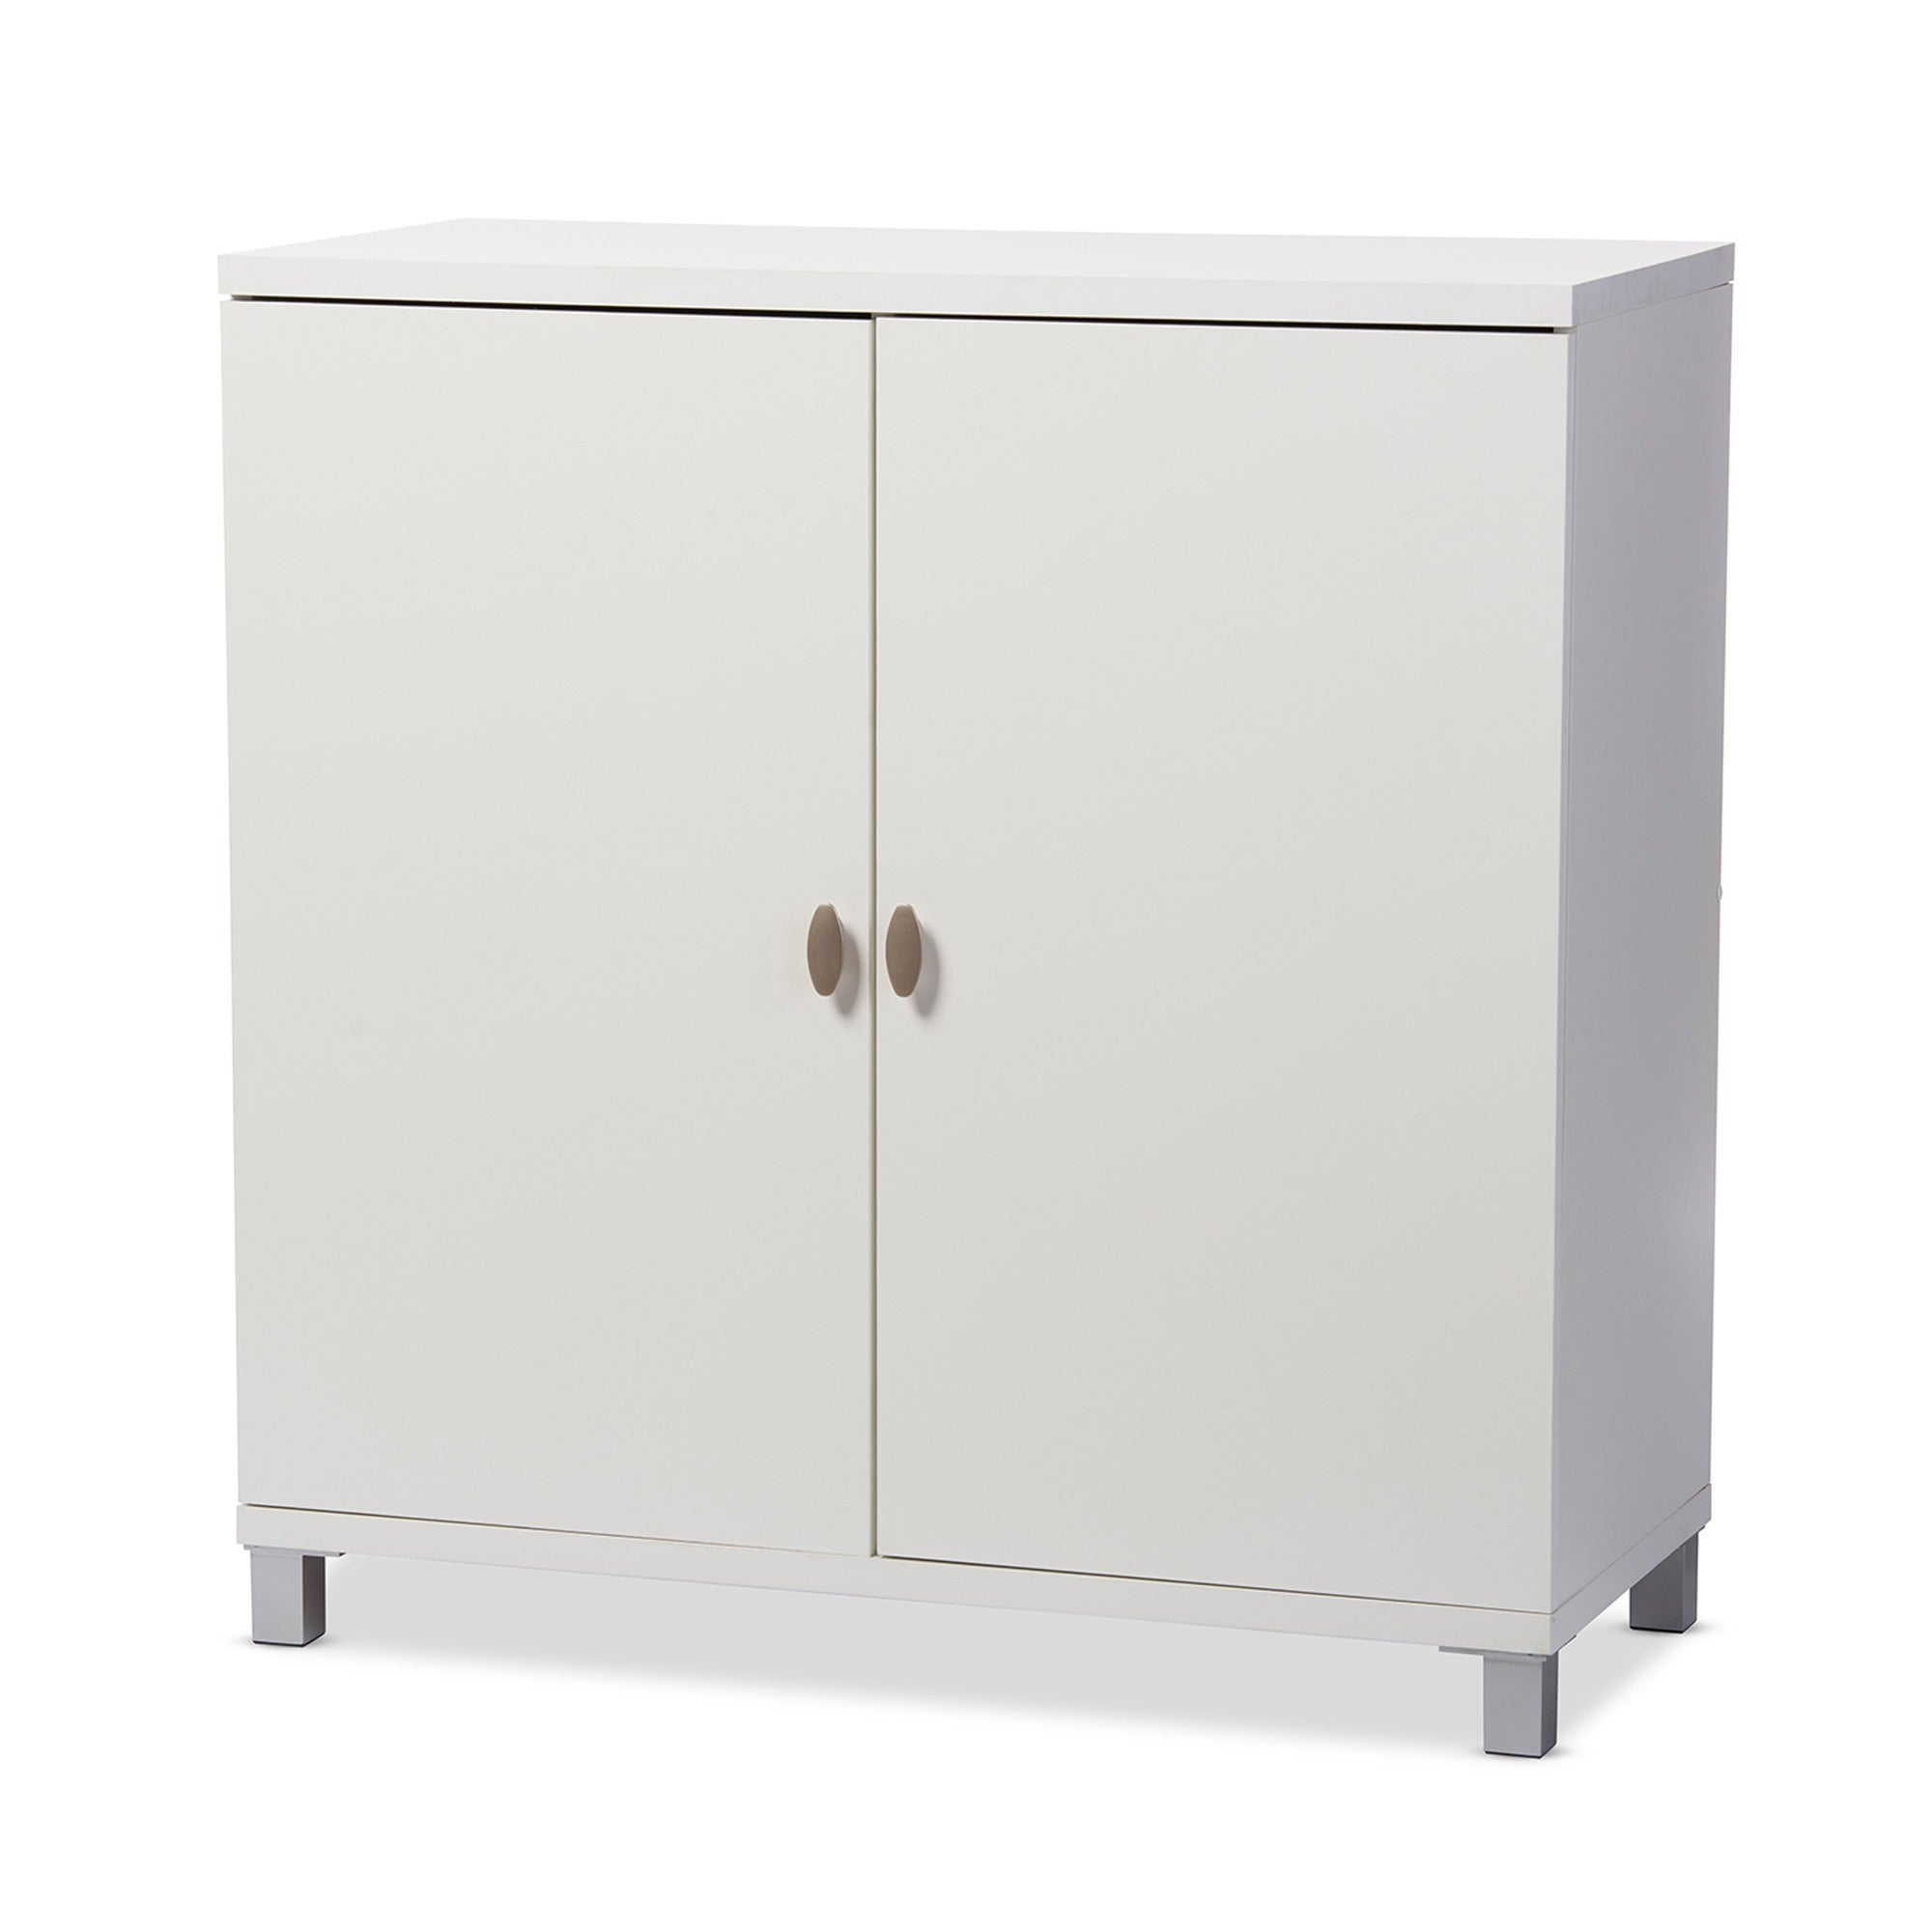 Baxton Studio Marcy Contemporary White Wood Storage Sideboard Cabinet On Free Shipping Today 10603530